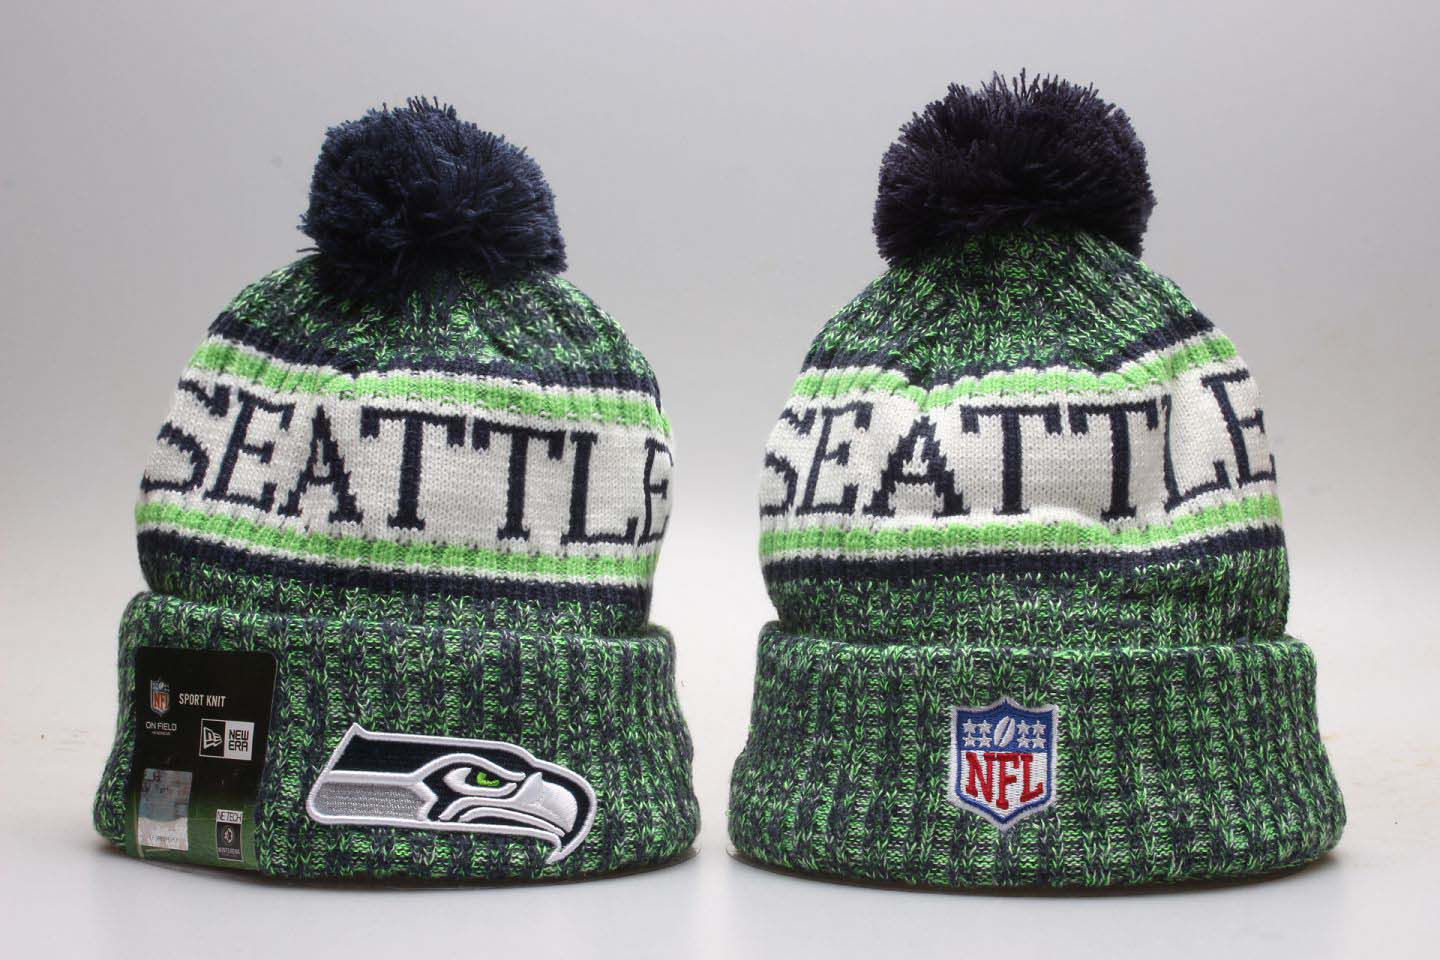 NFL Seattle Seahawks Beanie hot hat2